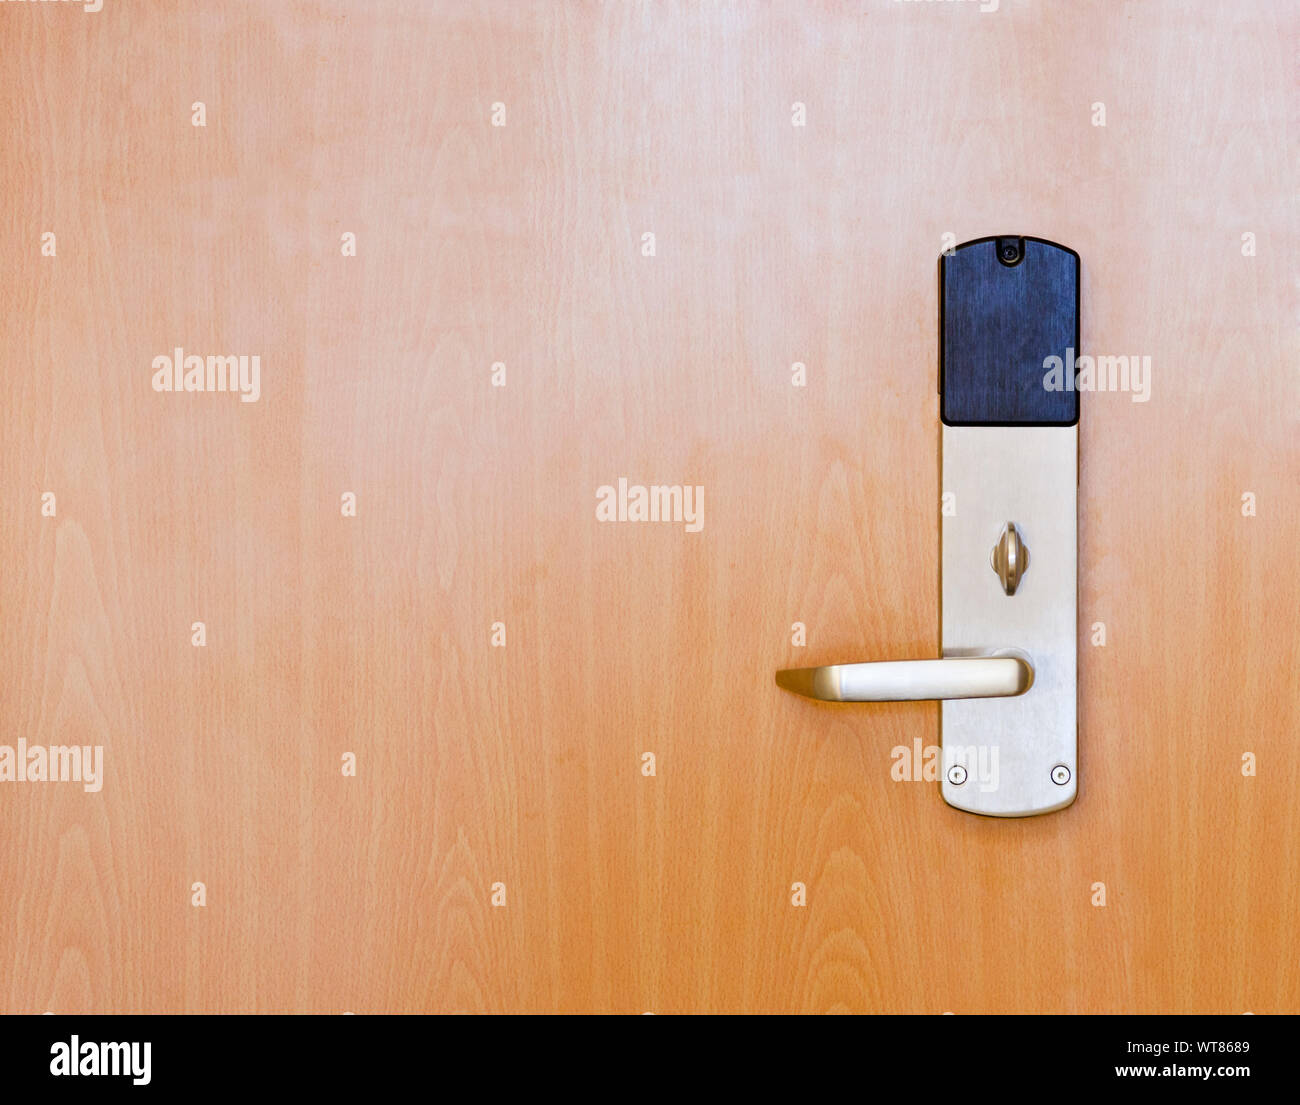 Section of a modern internal office door with handle and locking mechanism Stock Photo